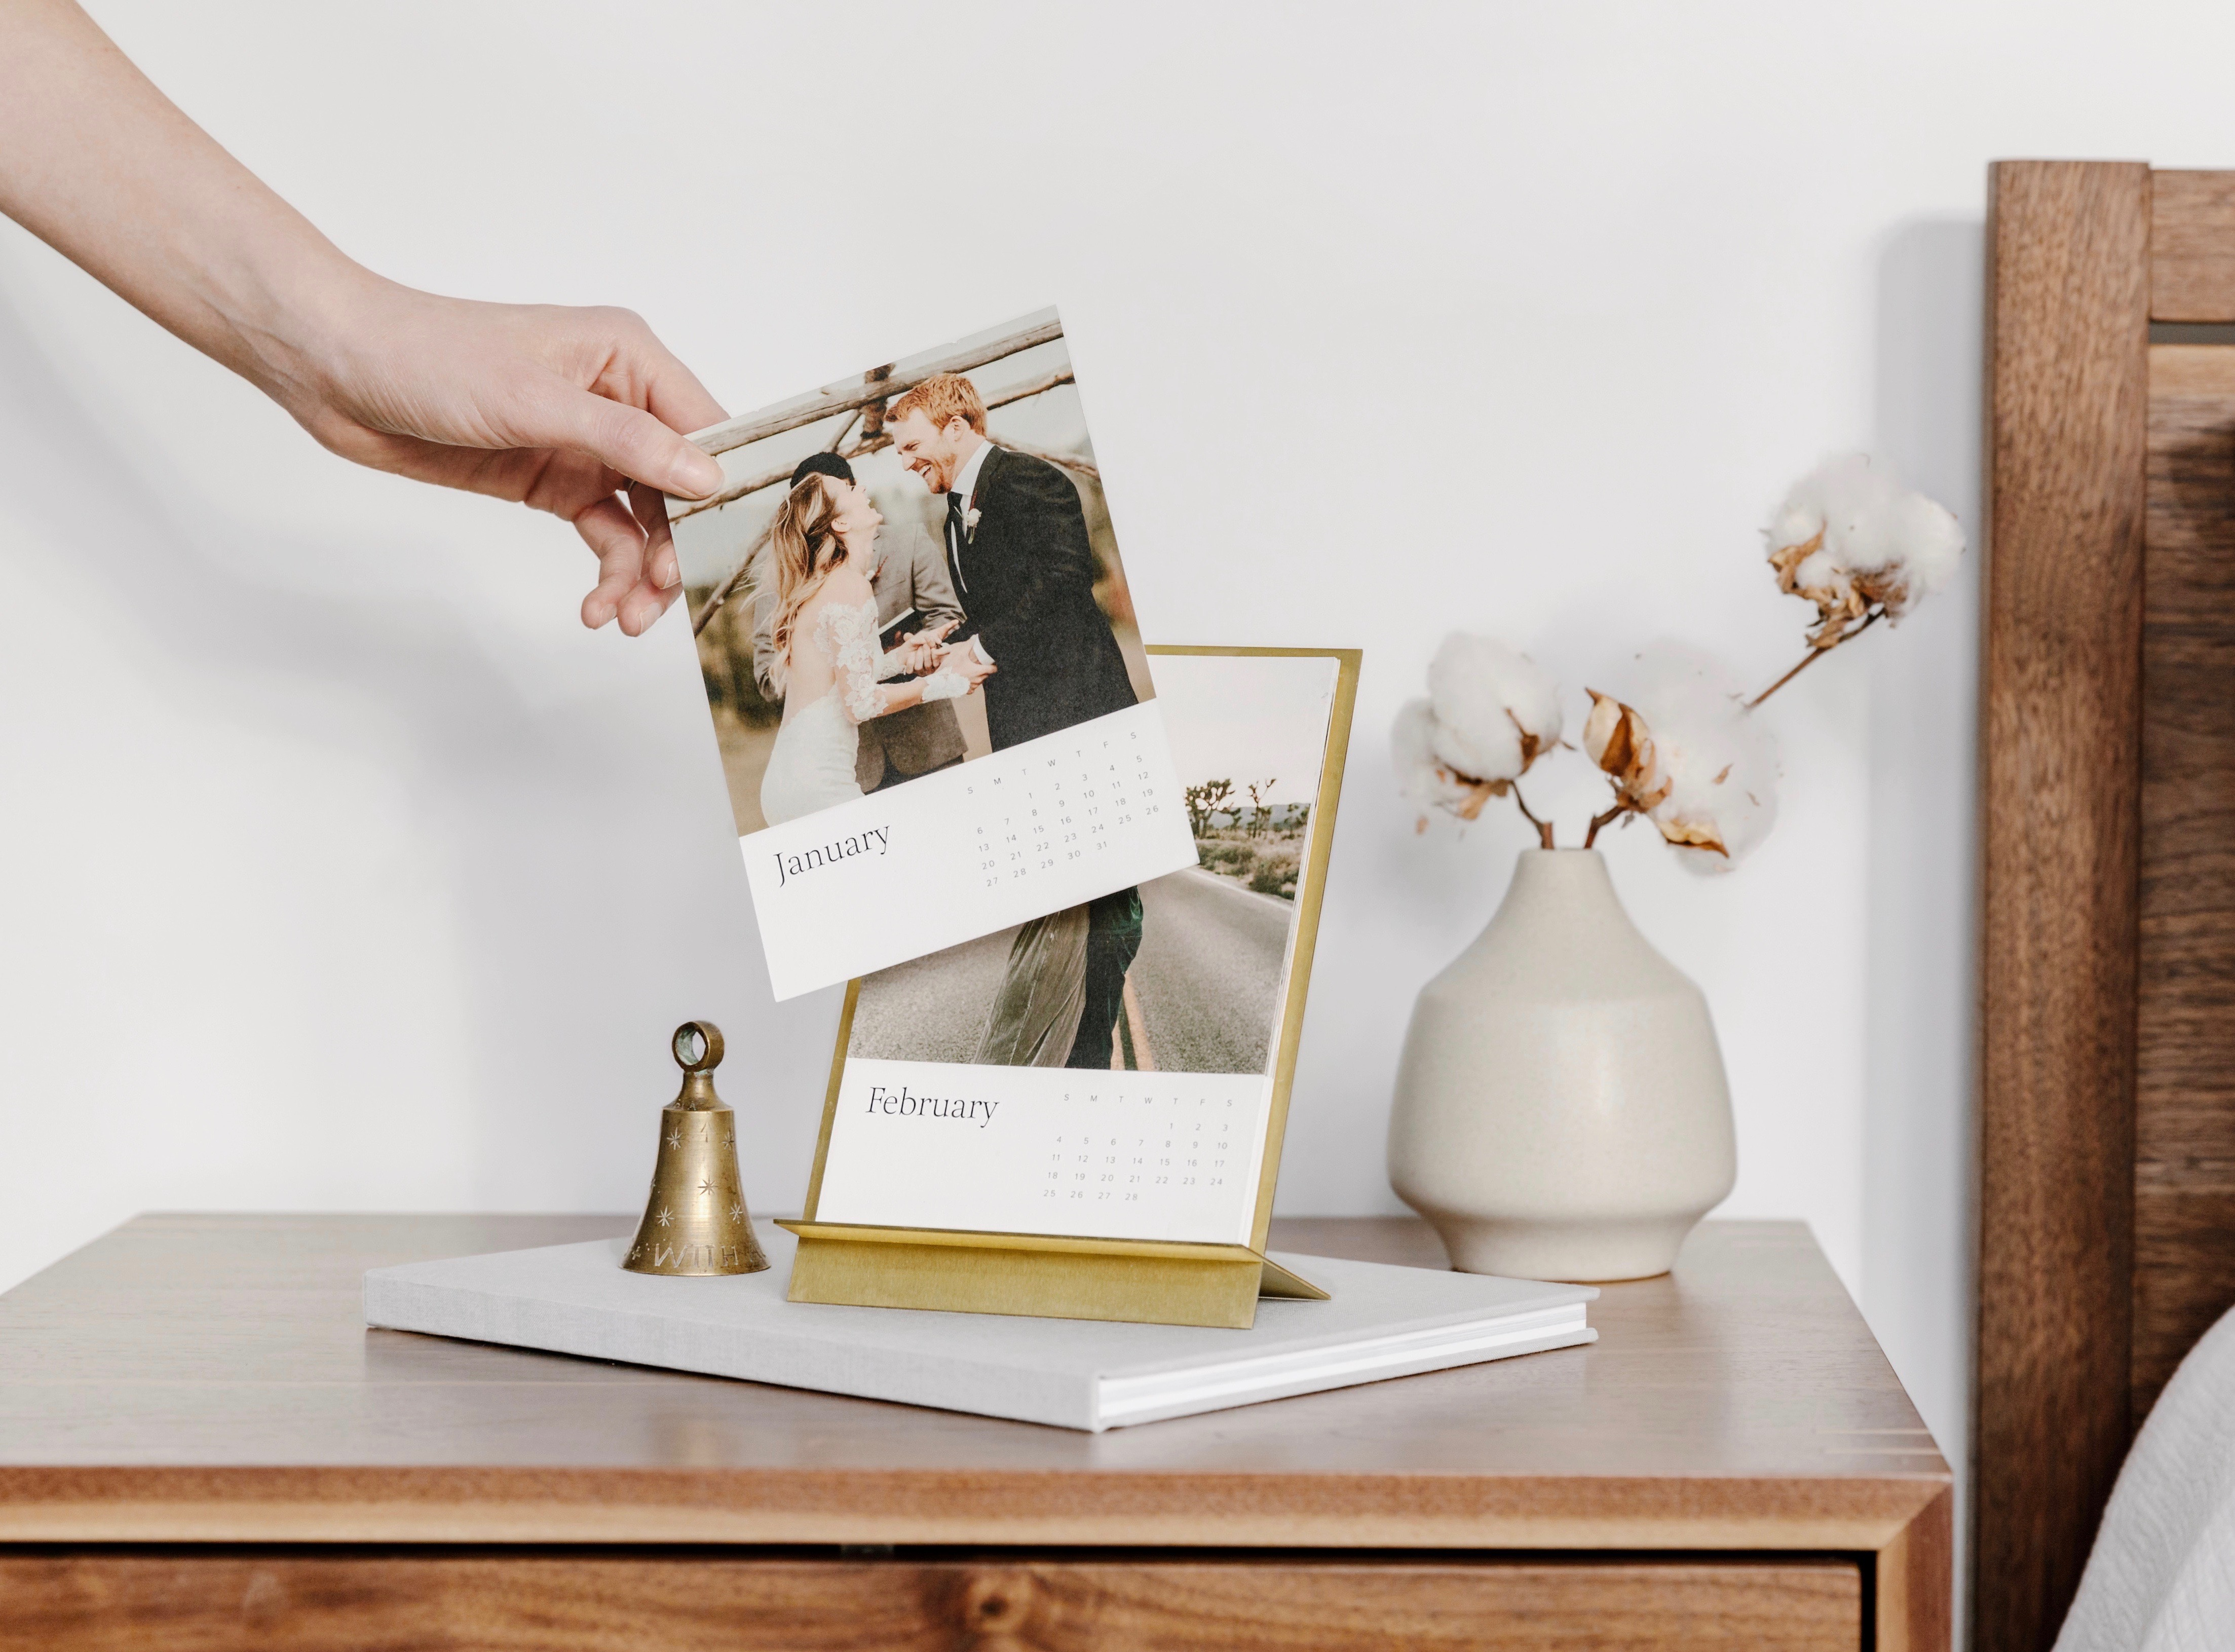 Hand changing month on brass easel calendar on nightstand